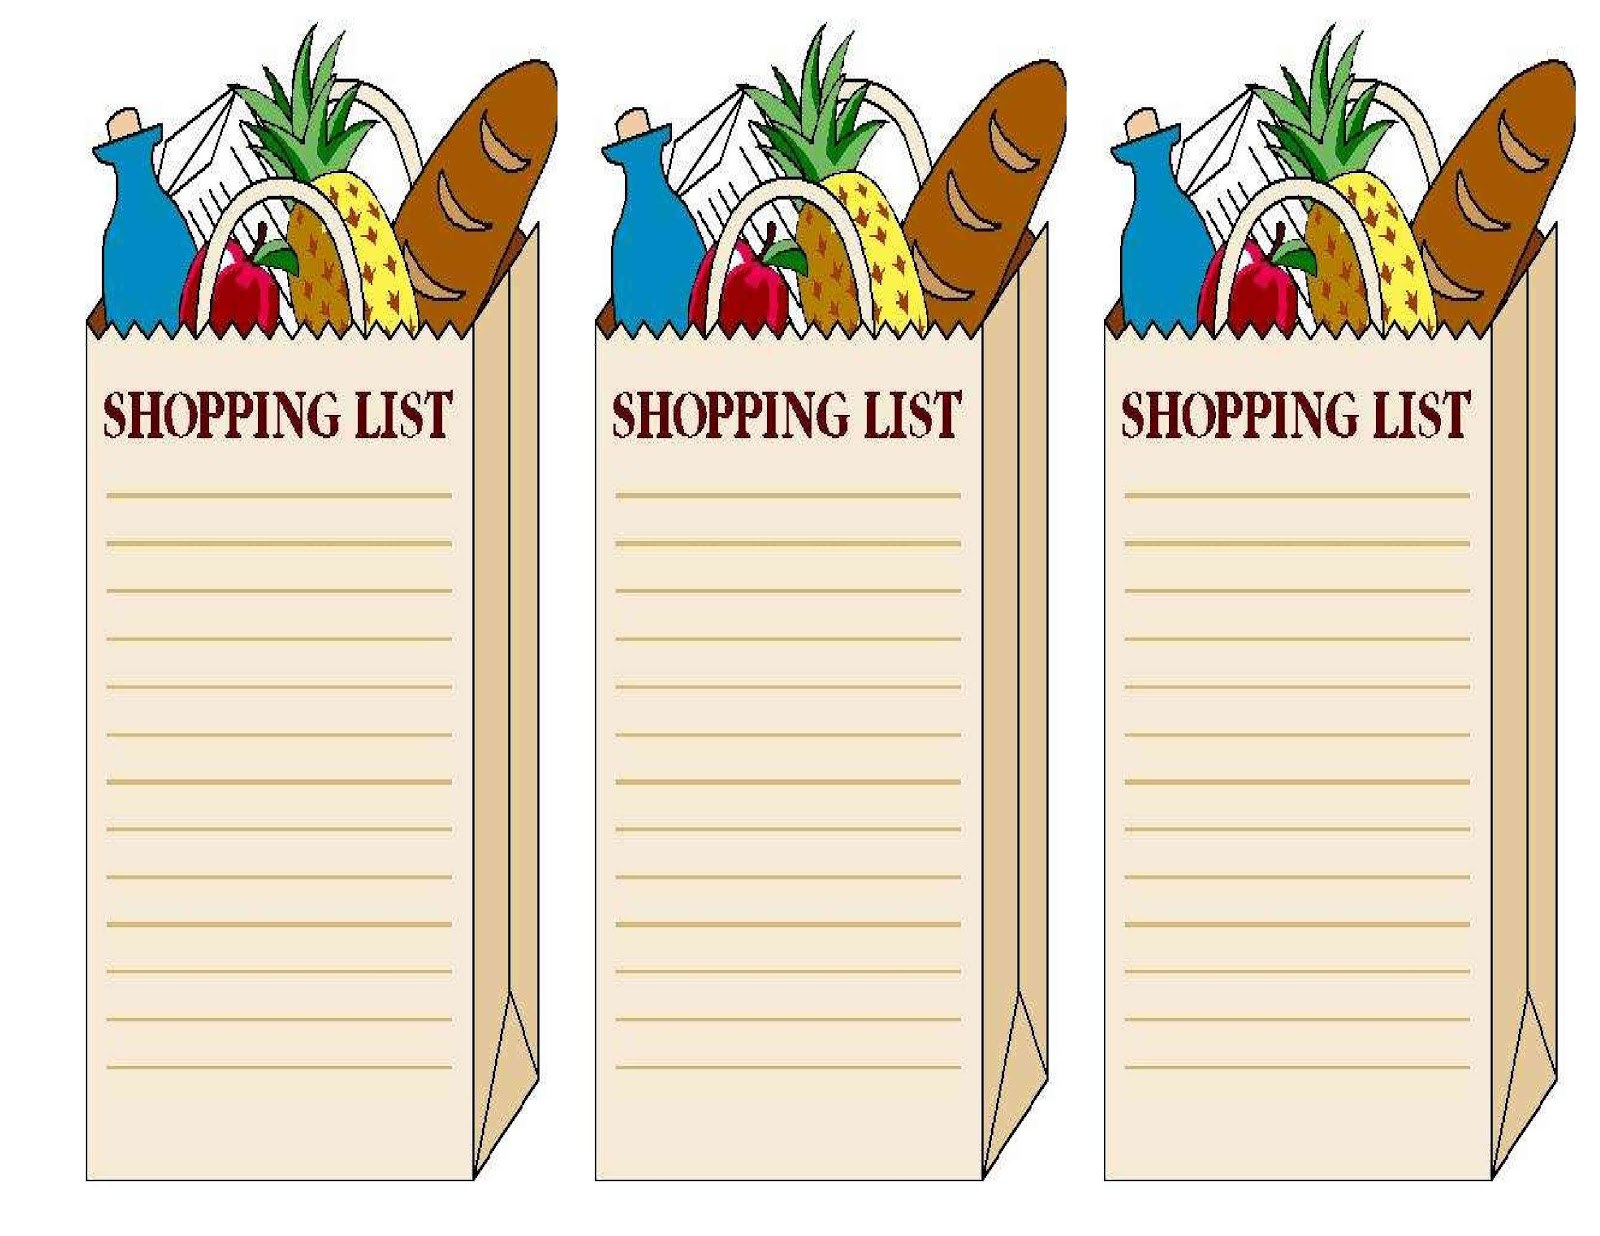 Shopping List Clipart 20 Free Cliparts